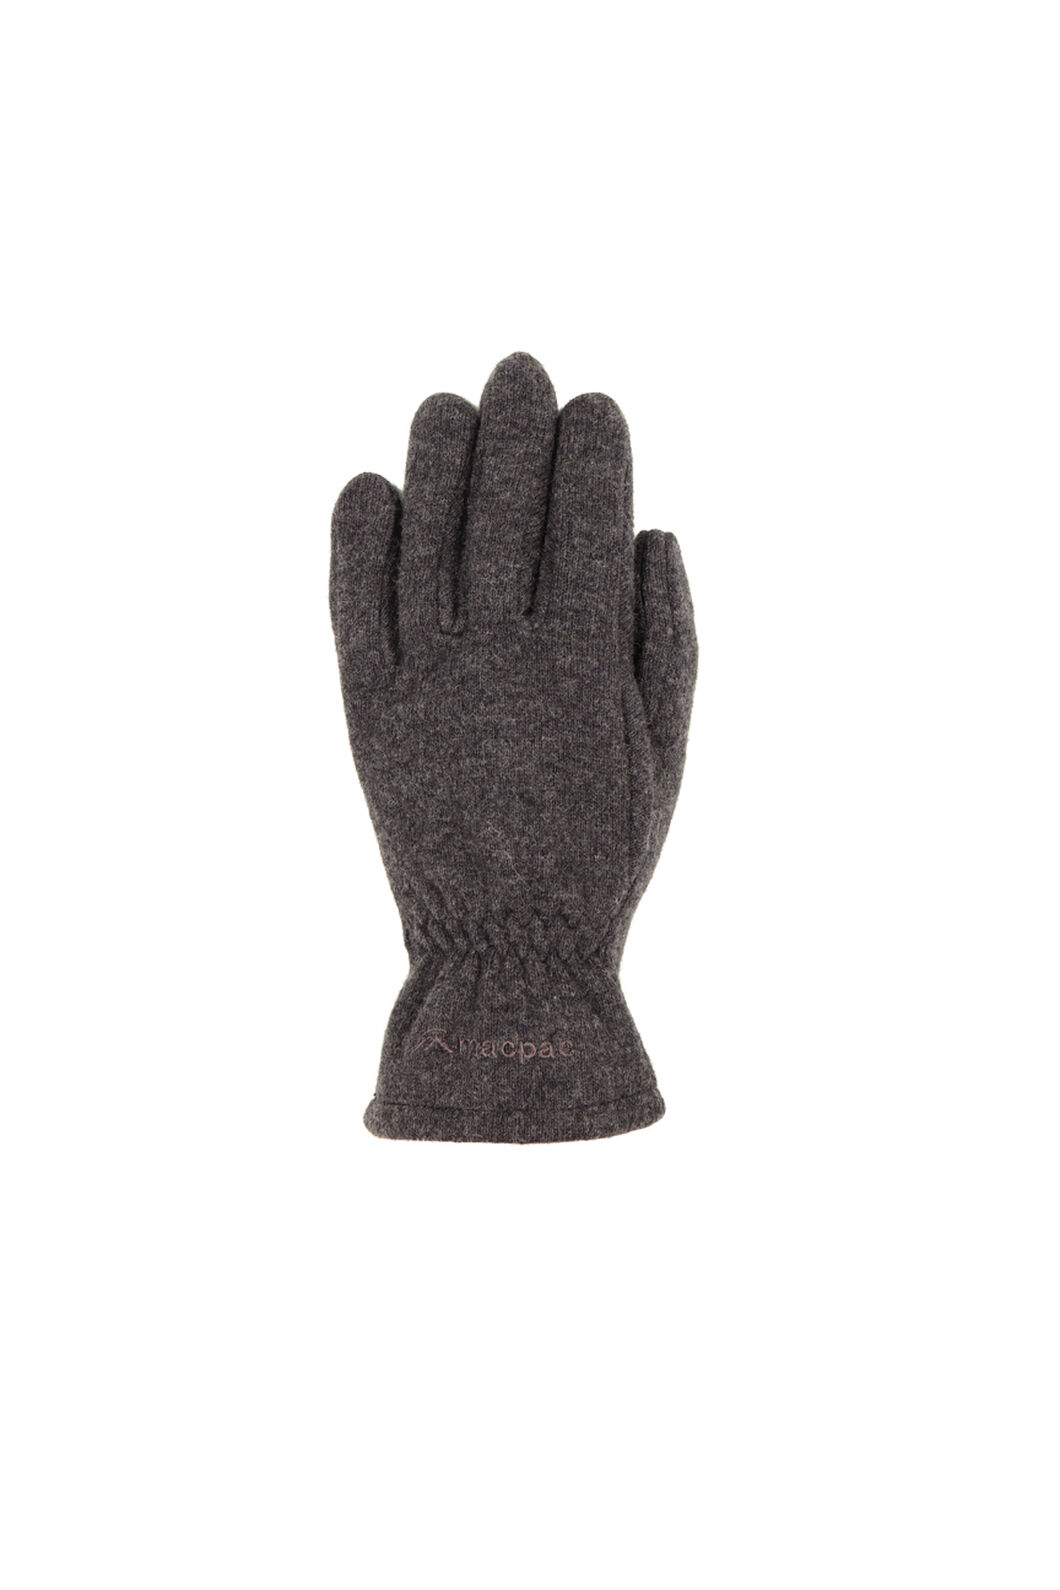 Macpac Tech Wool Gloves, Charcoal, hi-res